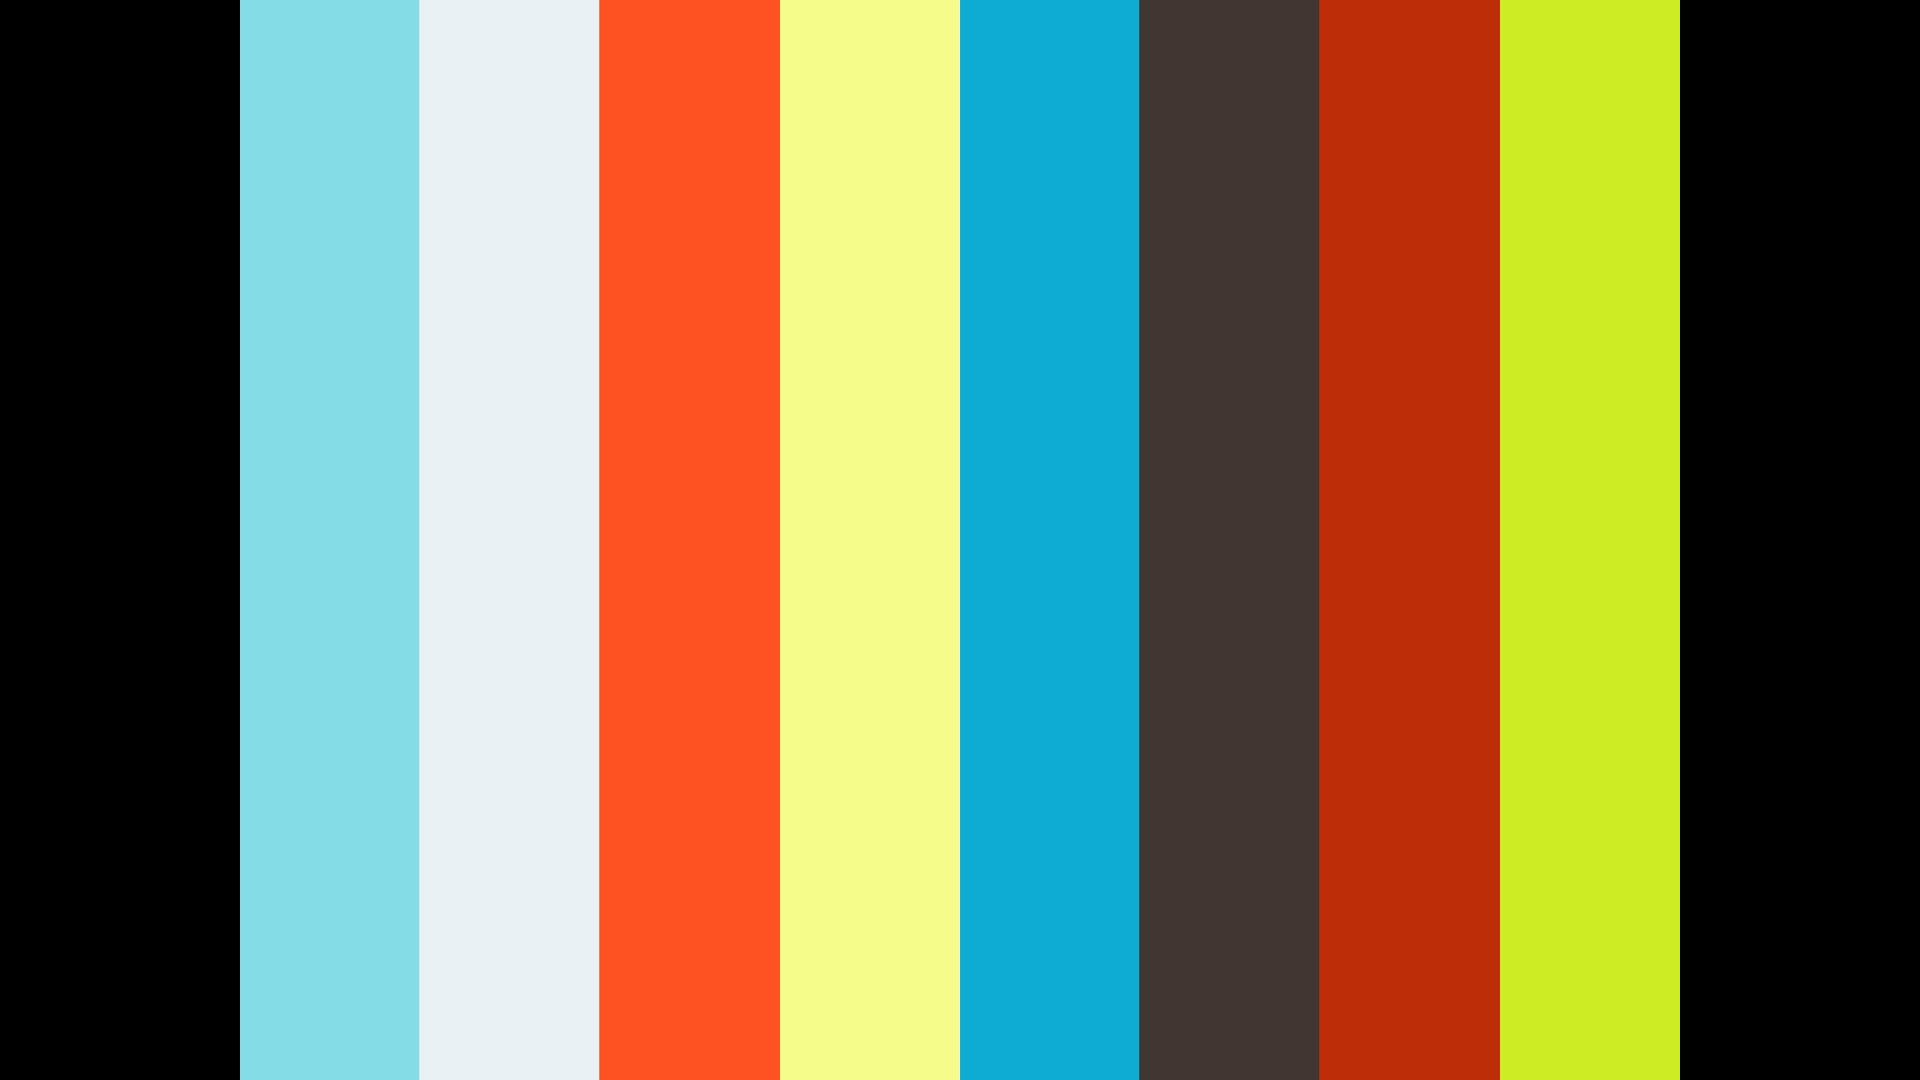 Introduction of Reinhold Görling by Anna Tuschling [4, 1]